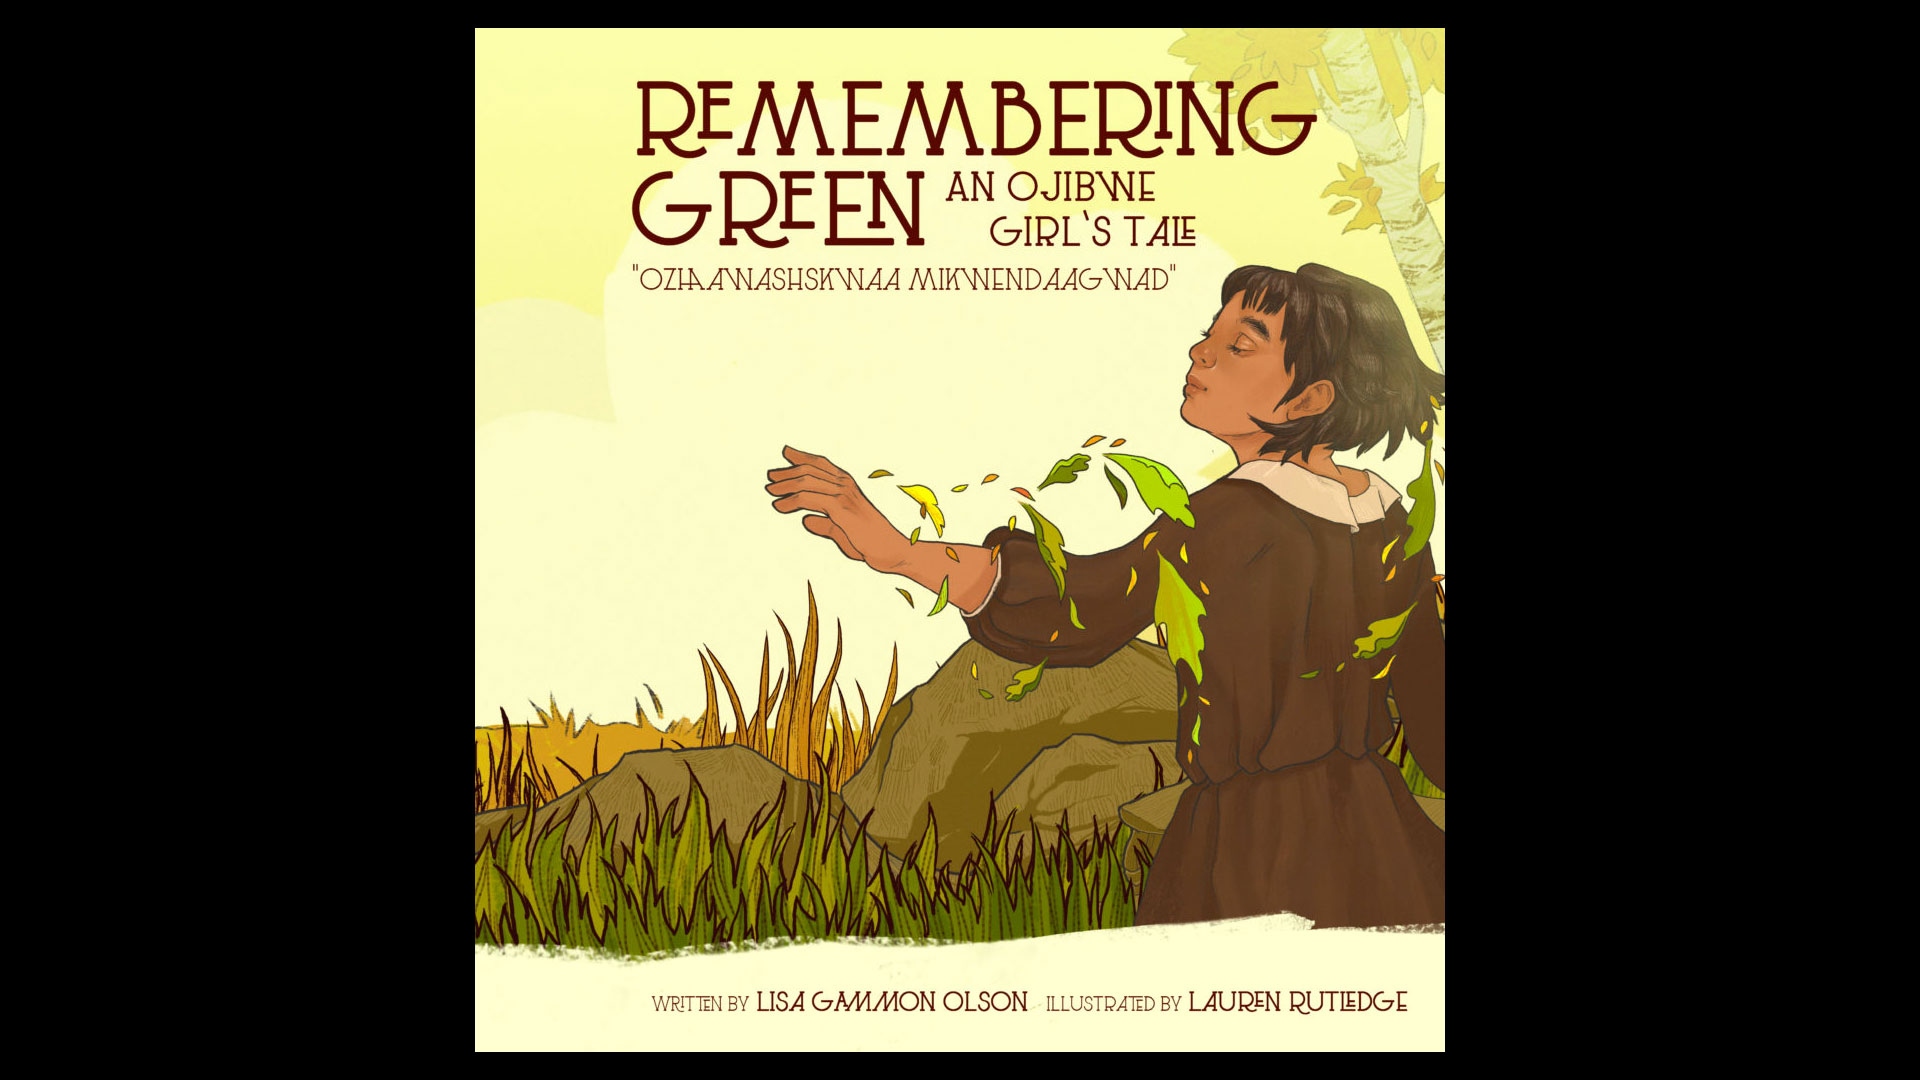 Remembering Green cover image